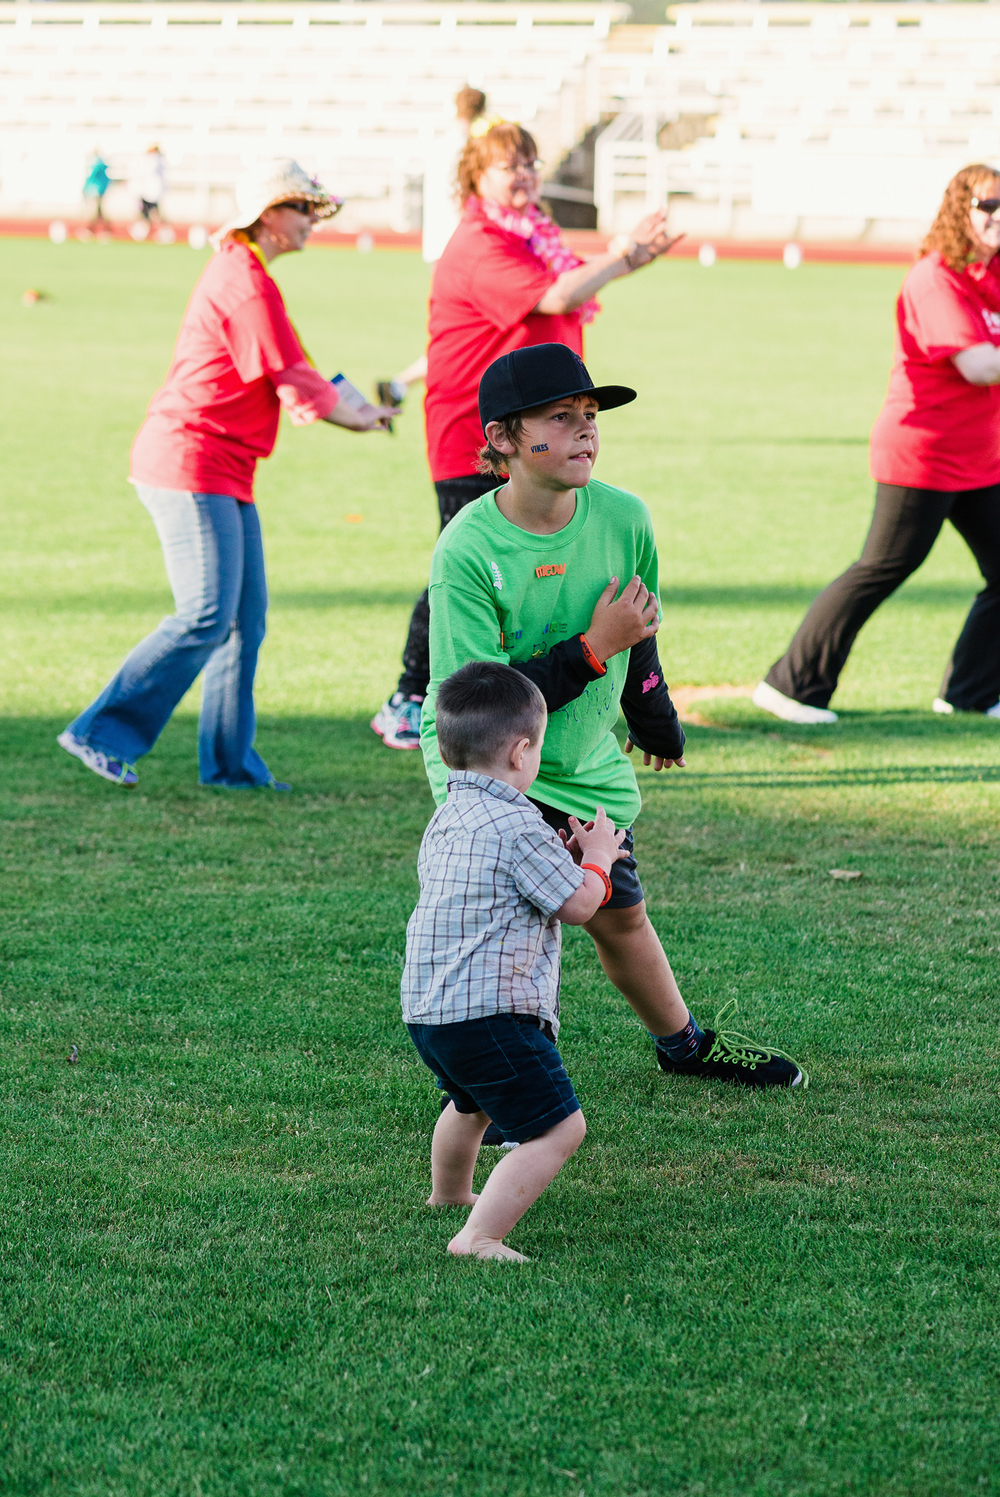 Lily_and_Lane_Relay_For_Life_Victoria_2015 (188).jpg